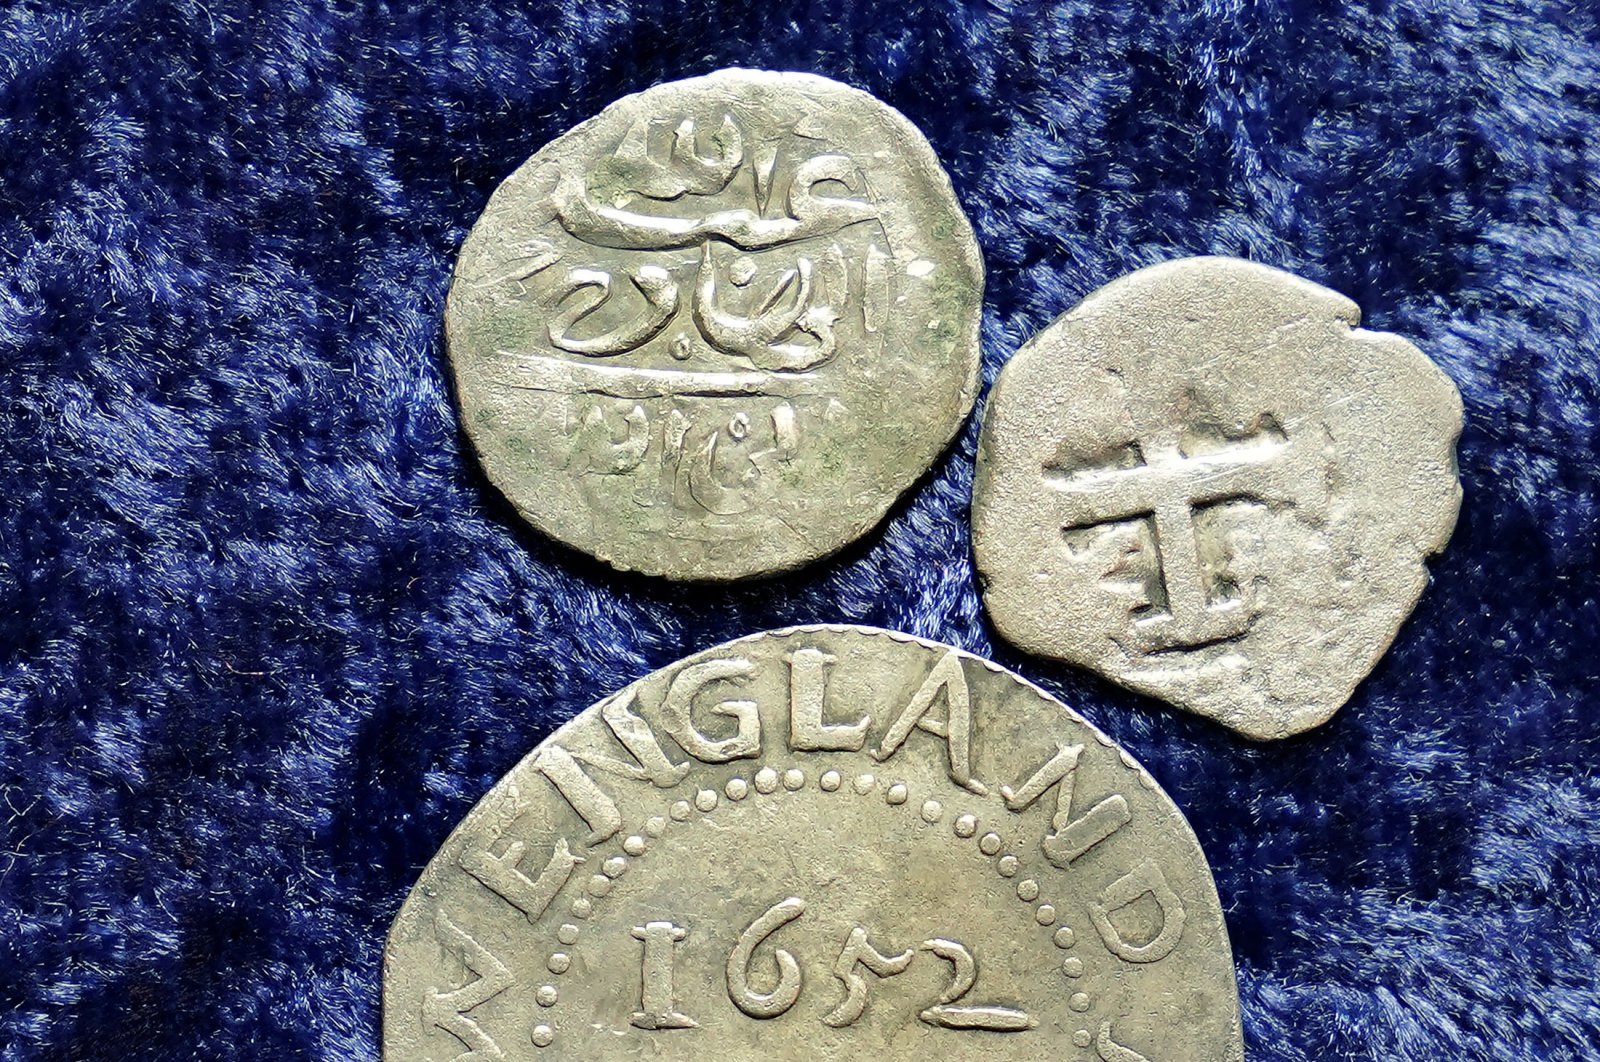 A 17th-century Arabian silver coin, top, that research shows was struck in 1693 in Yemen, rests near an Oak Tree Shilling minted in 1652 by the Massachusetts Bay Colony, below, and a Spanish half-real coin from 1727, right, on a table, in Warwick, Rhode Island, U.S., March 11, 2021. (AP Photo)